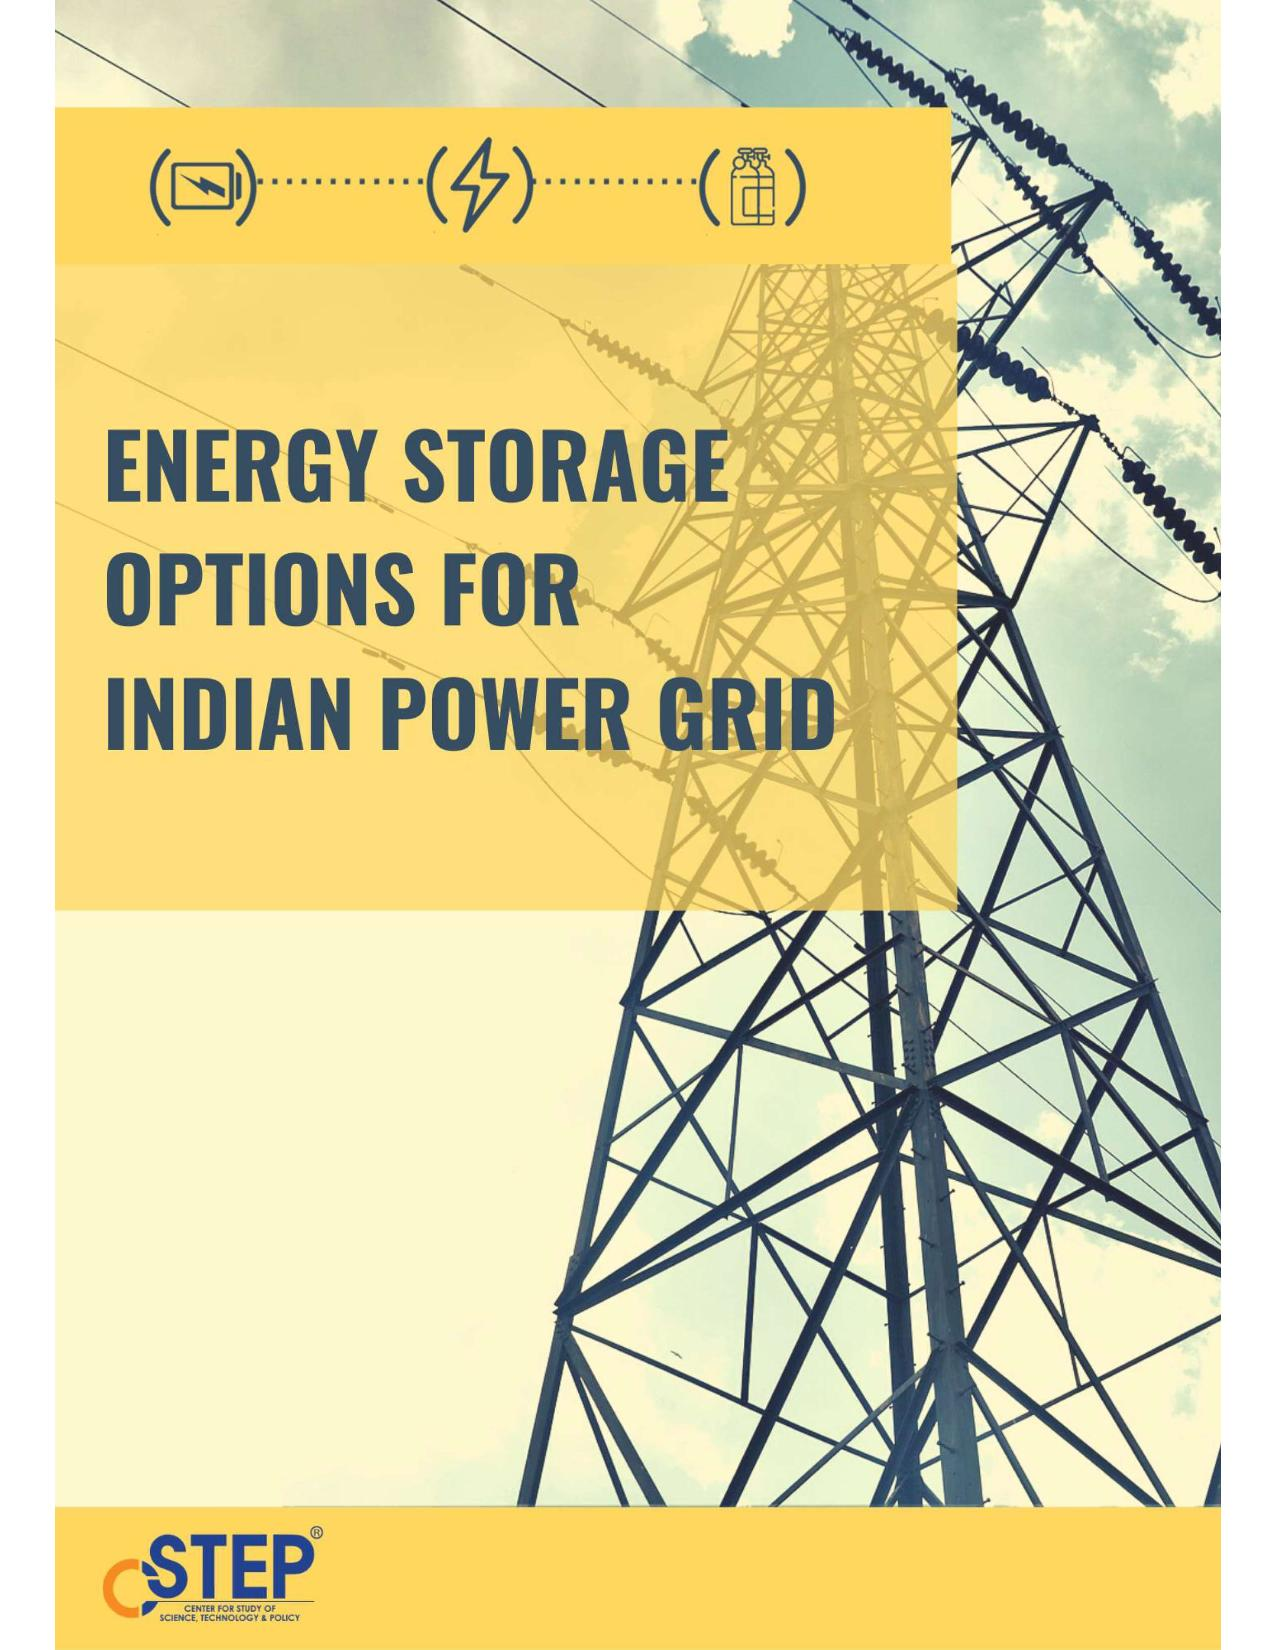 Energy Storage Options for Indian Power Grid